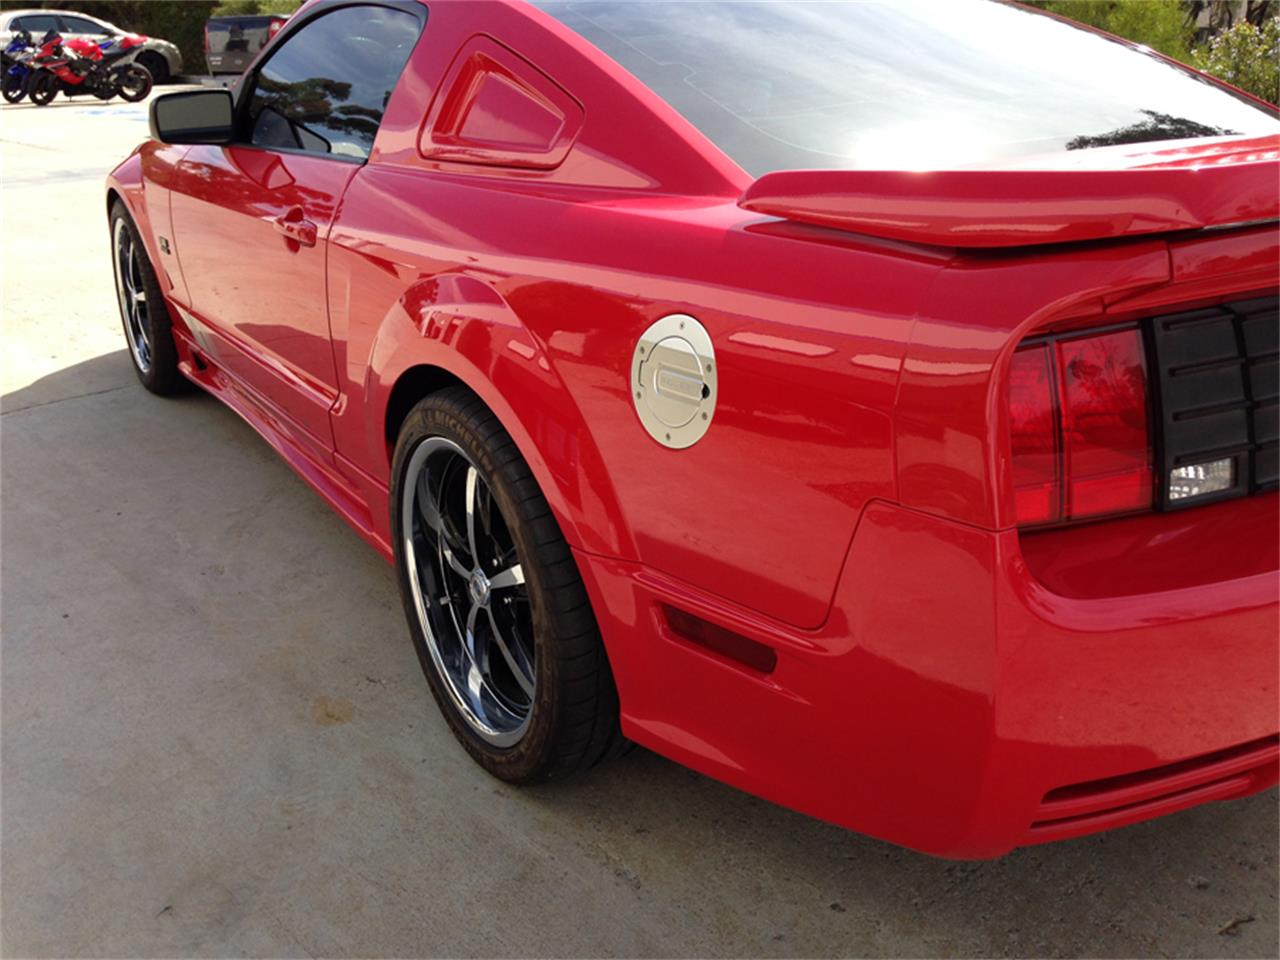 2006 Ford Mustang (Saleen) (CC-1077207) for sale in Spring Valley, California